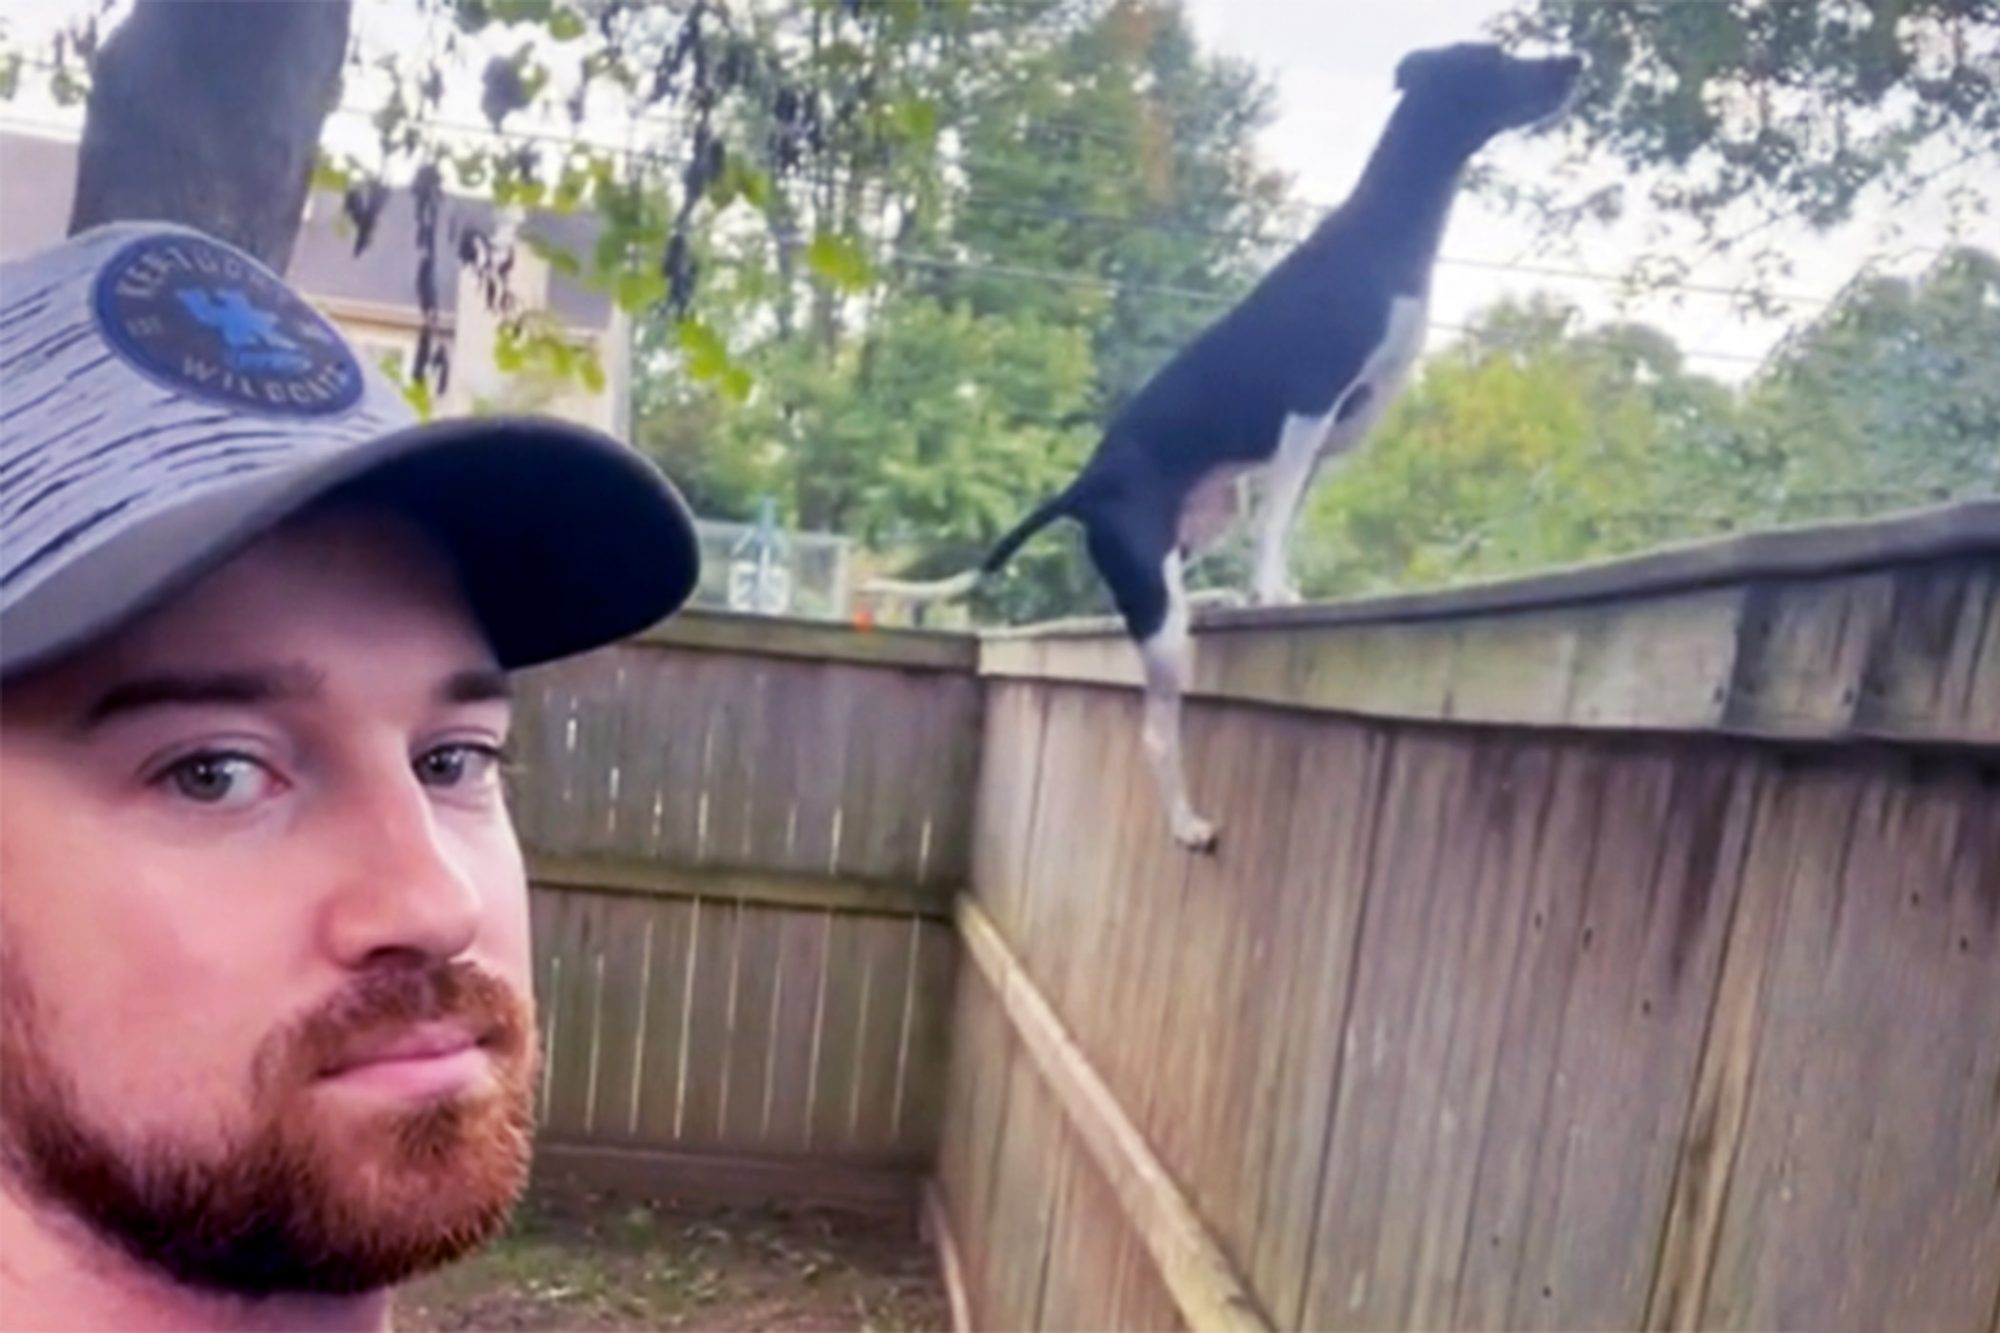 jumping dog scaling tall fence